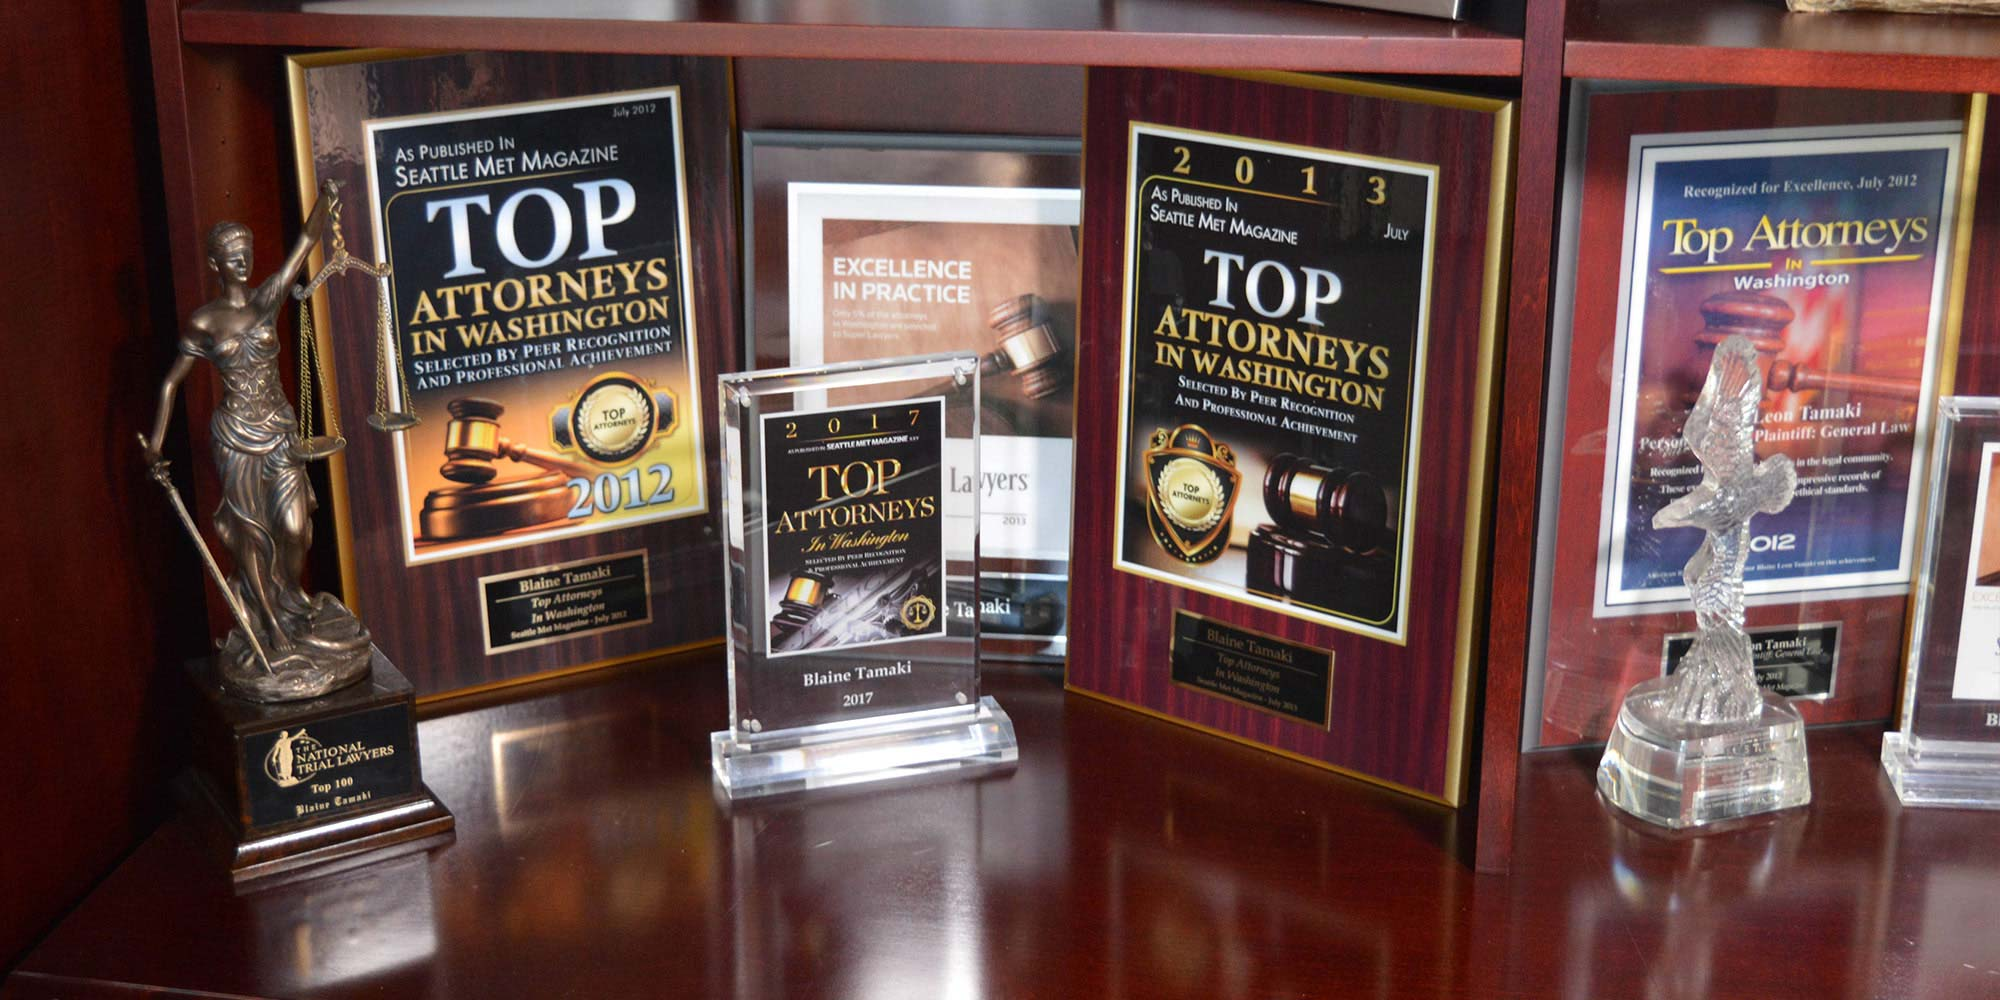 Top Attorneys in Washington plaques